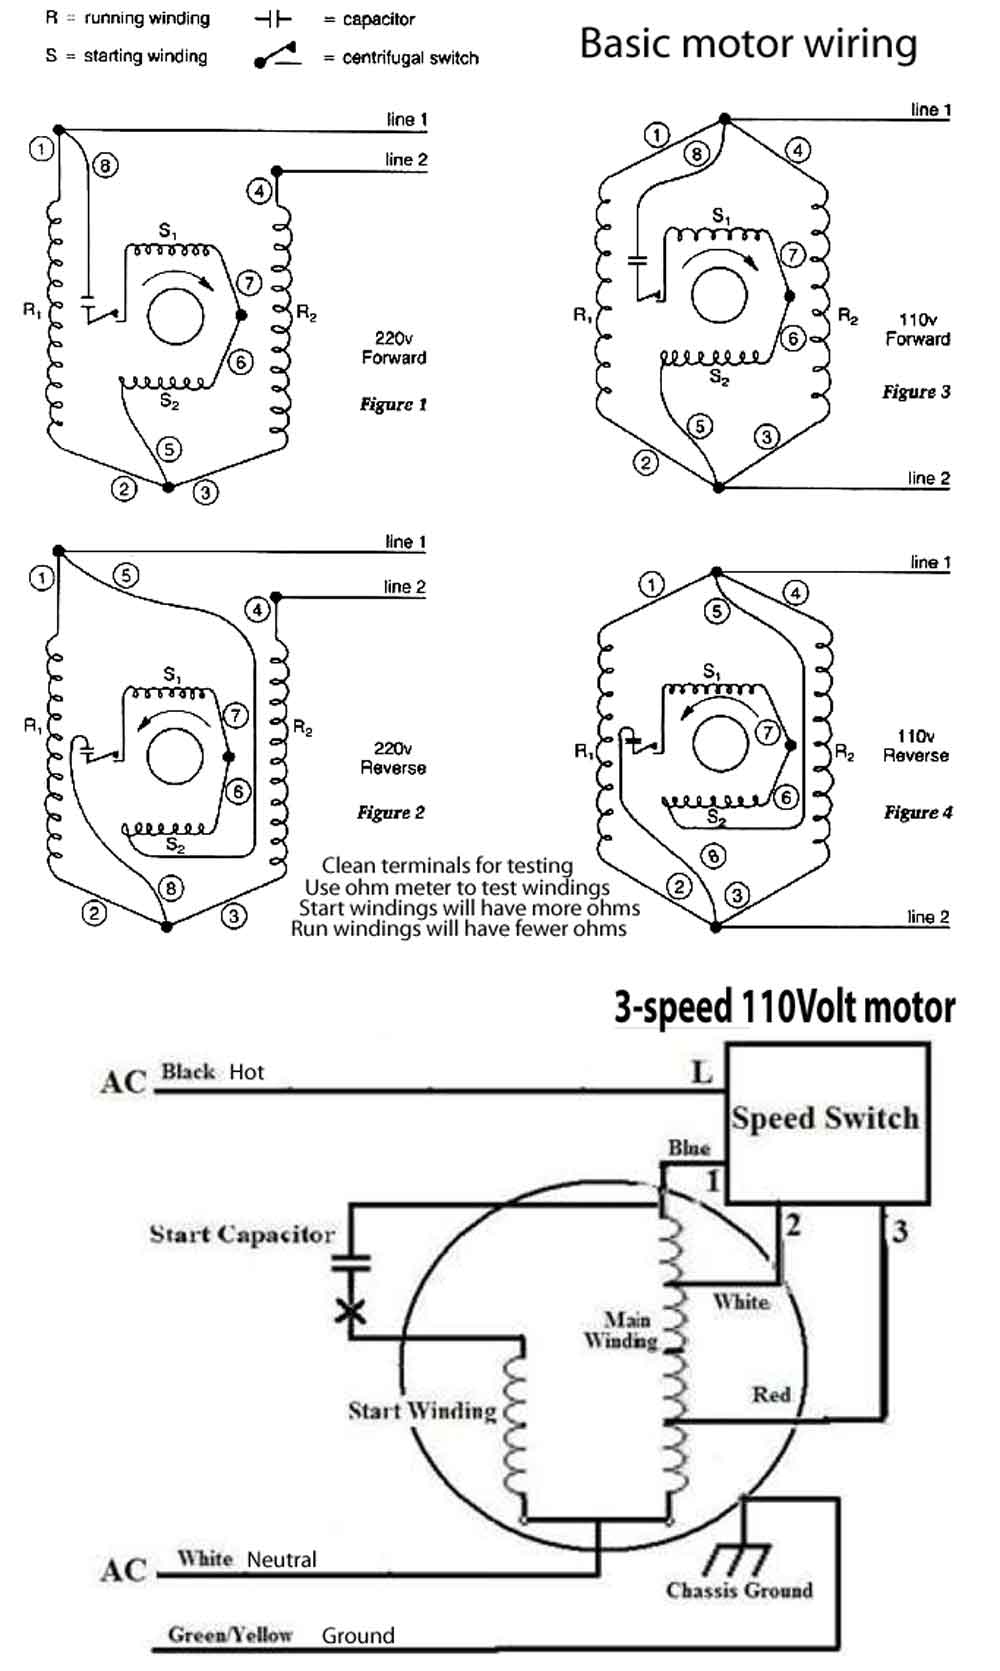 Motor wiring 500 3 phase fan motor wiring diagram 3 phase ac motor wiring \u2022 wiring Capacitor Start Motor Diagrams at n-0.co